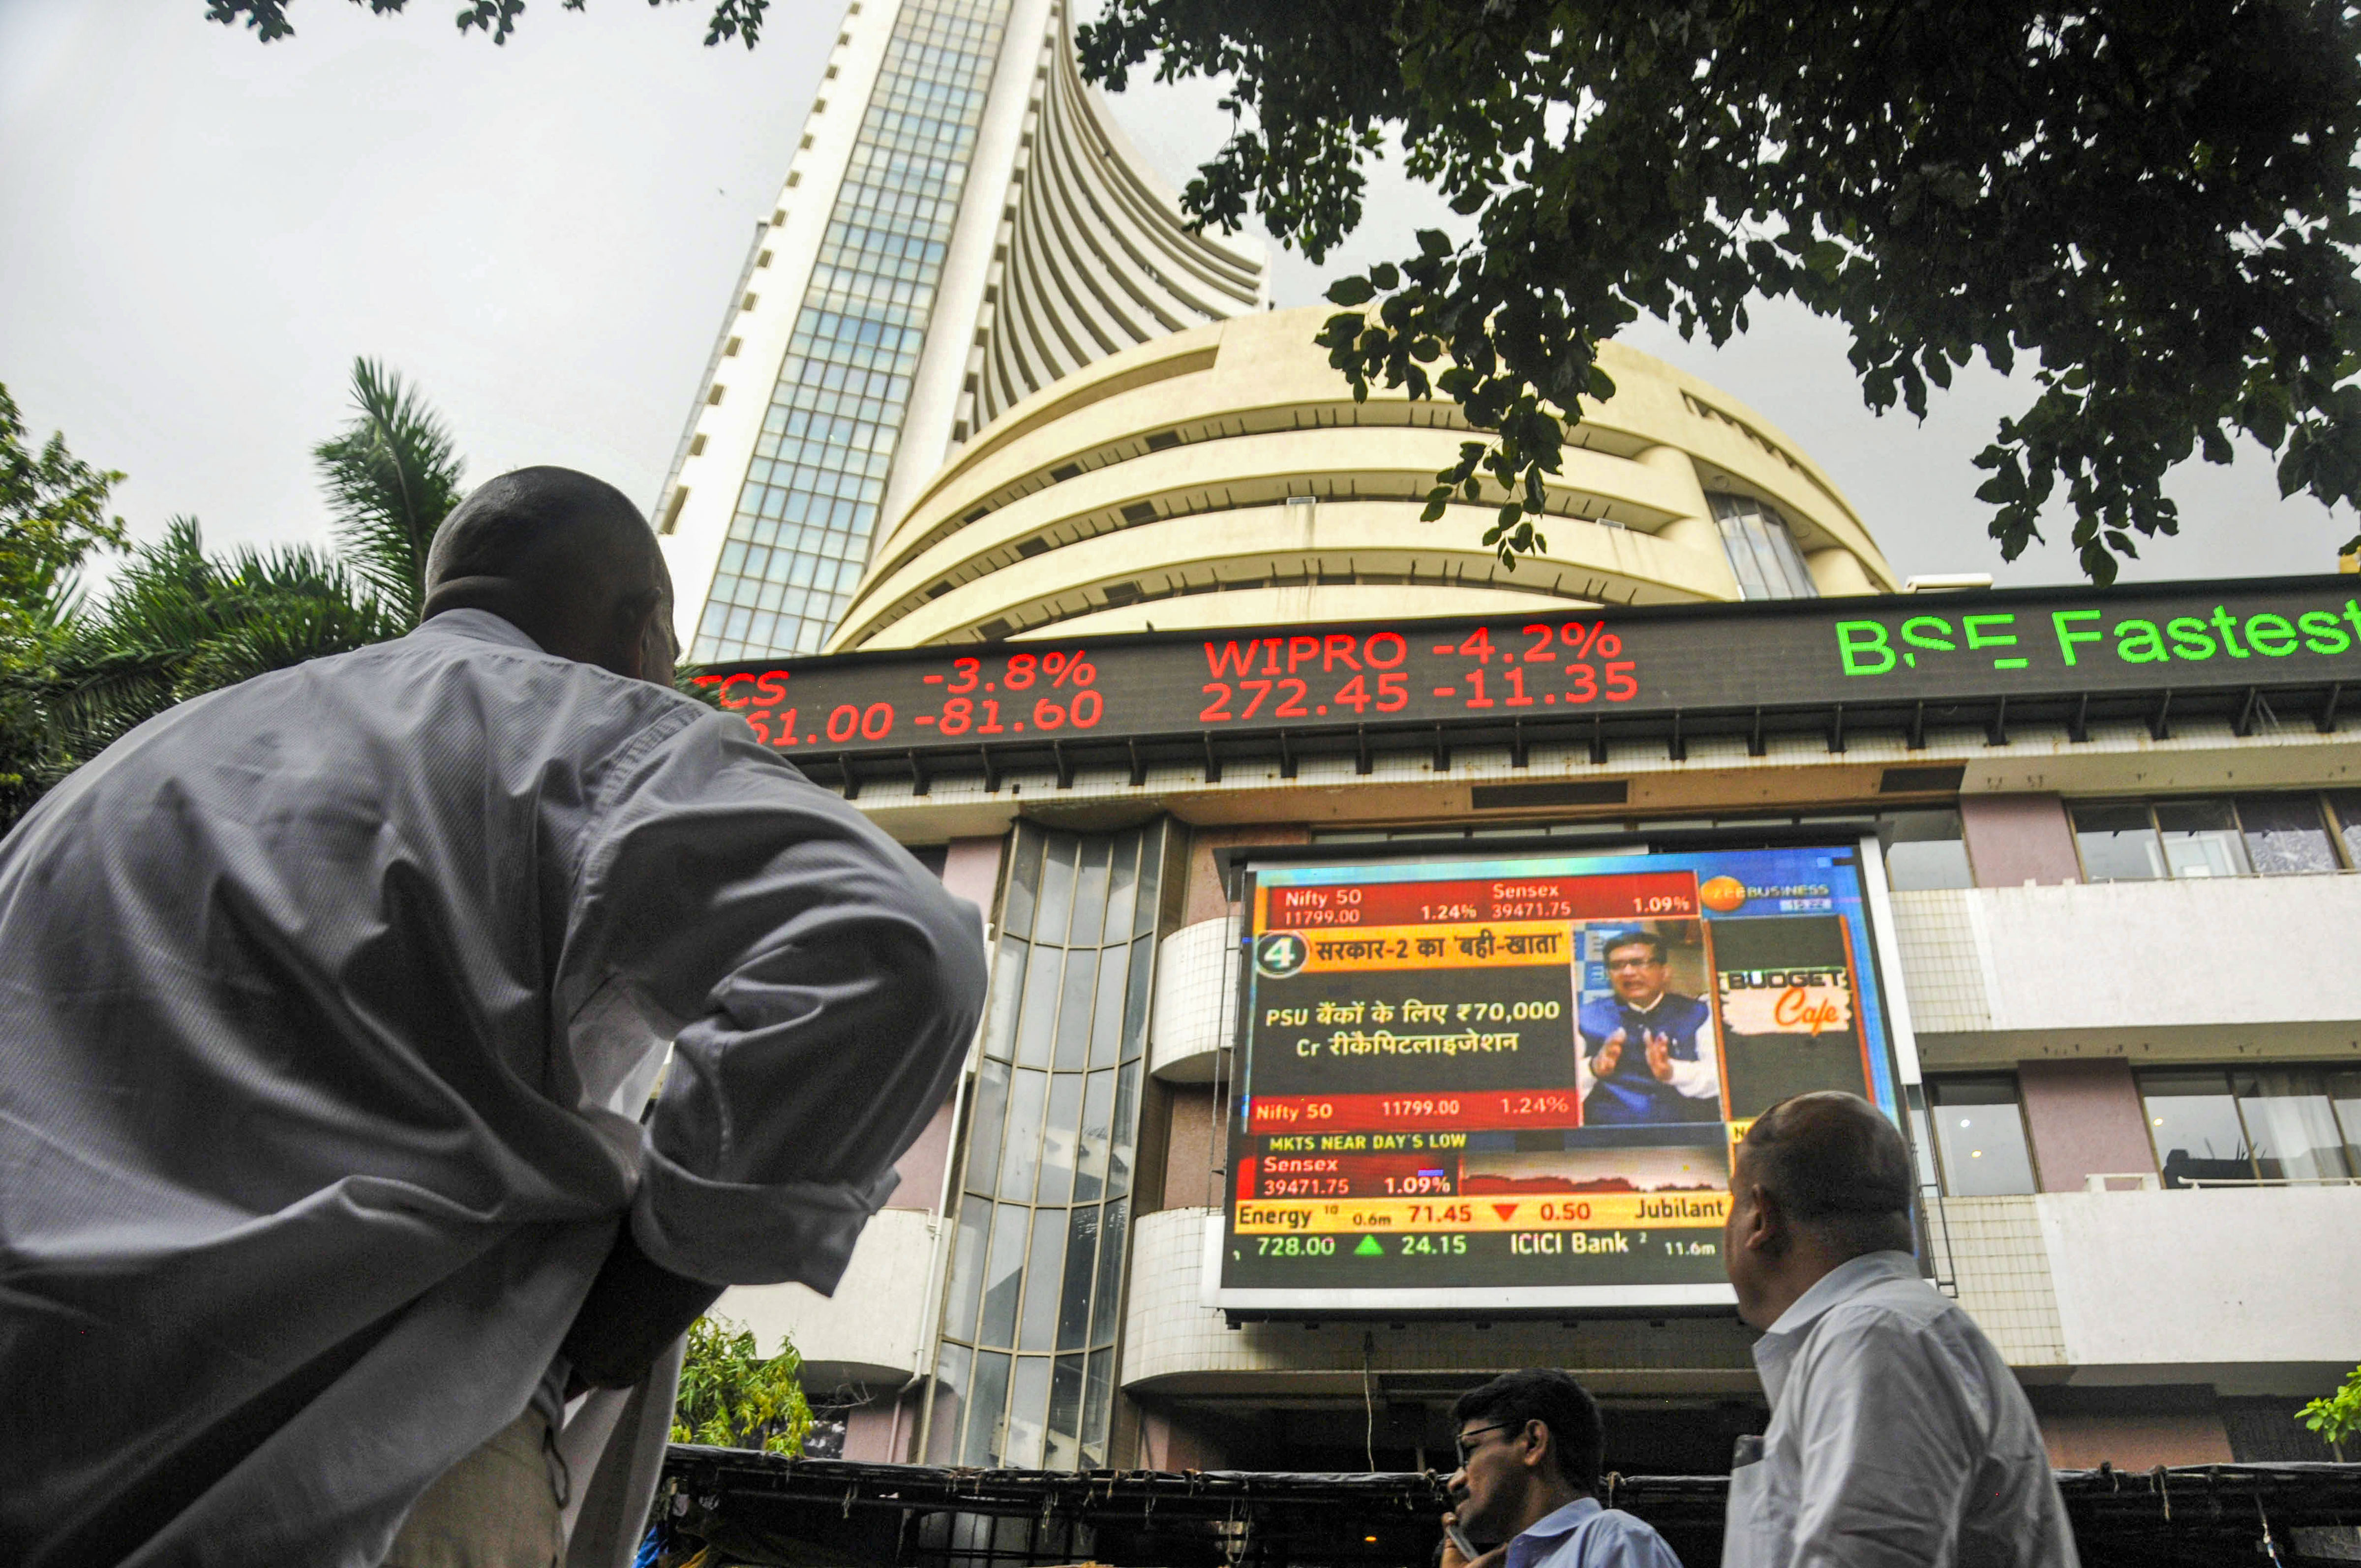 The stock market index on a display screen at the Bombay Stock Exchange (BSE) building in Mumbai - PTI